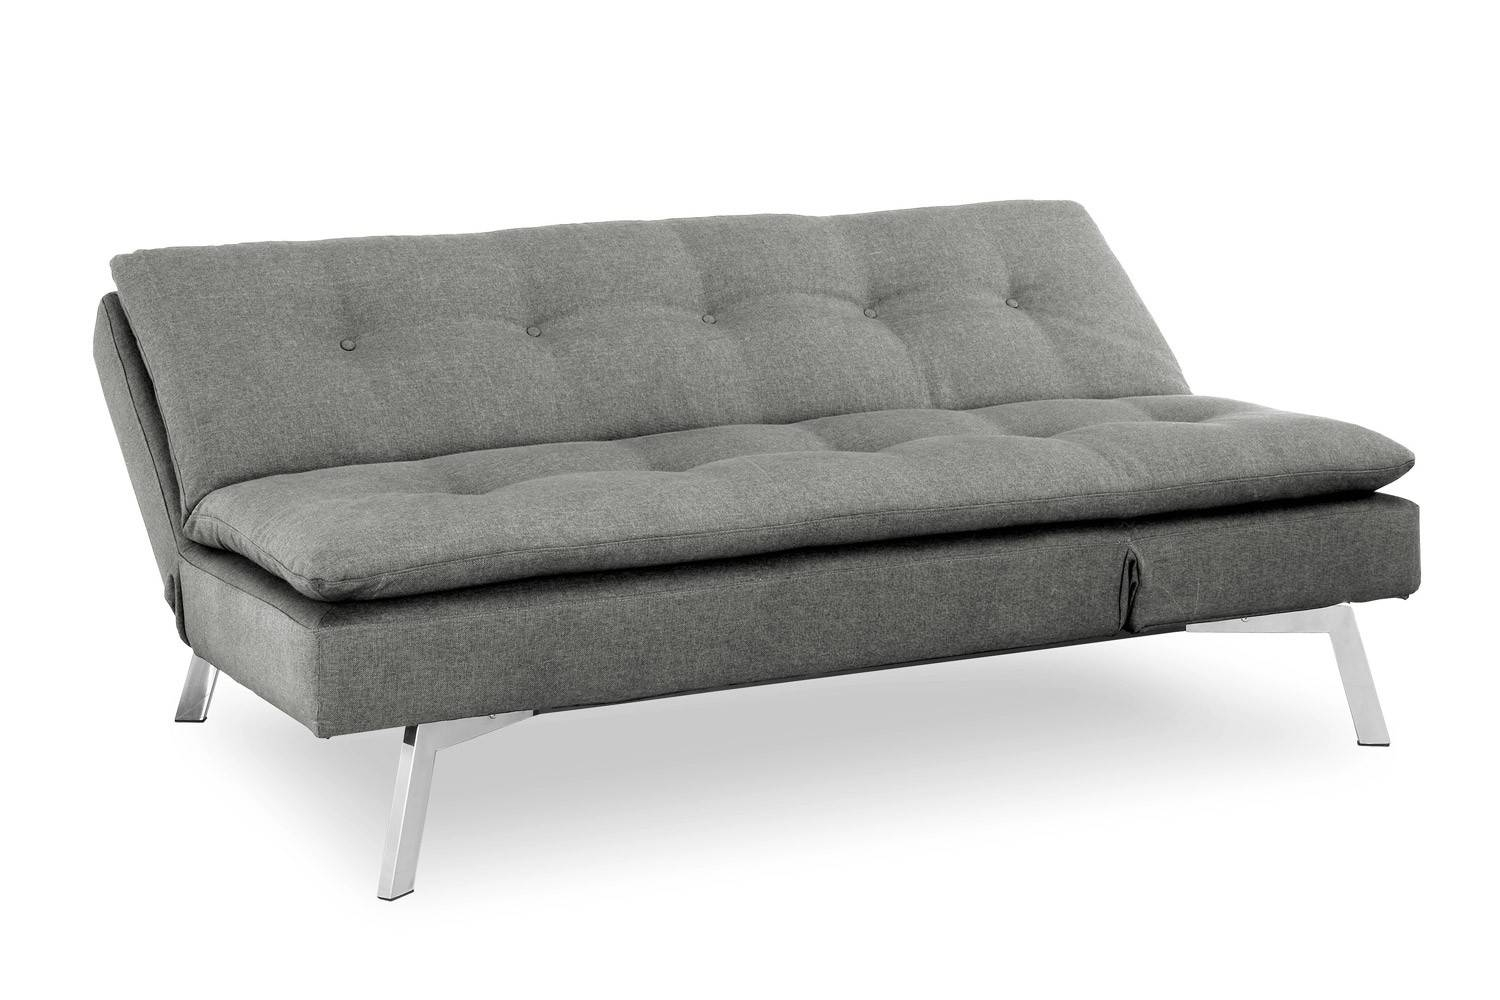 Shelby Sofa Sleeper | Shelby Futon | The Futon Shop within Cushion Sofa Beds (Image 18 of 30)